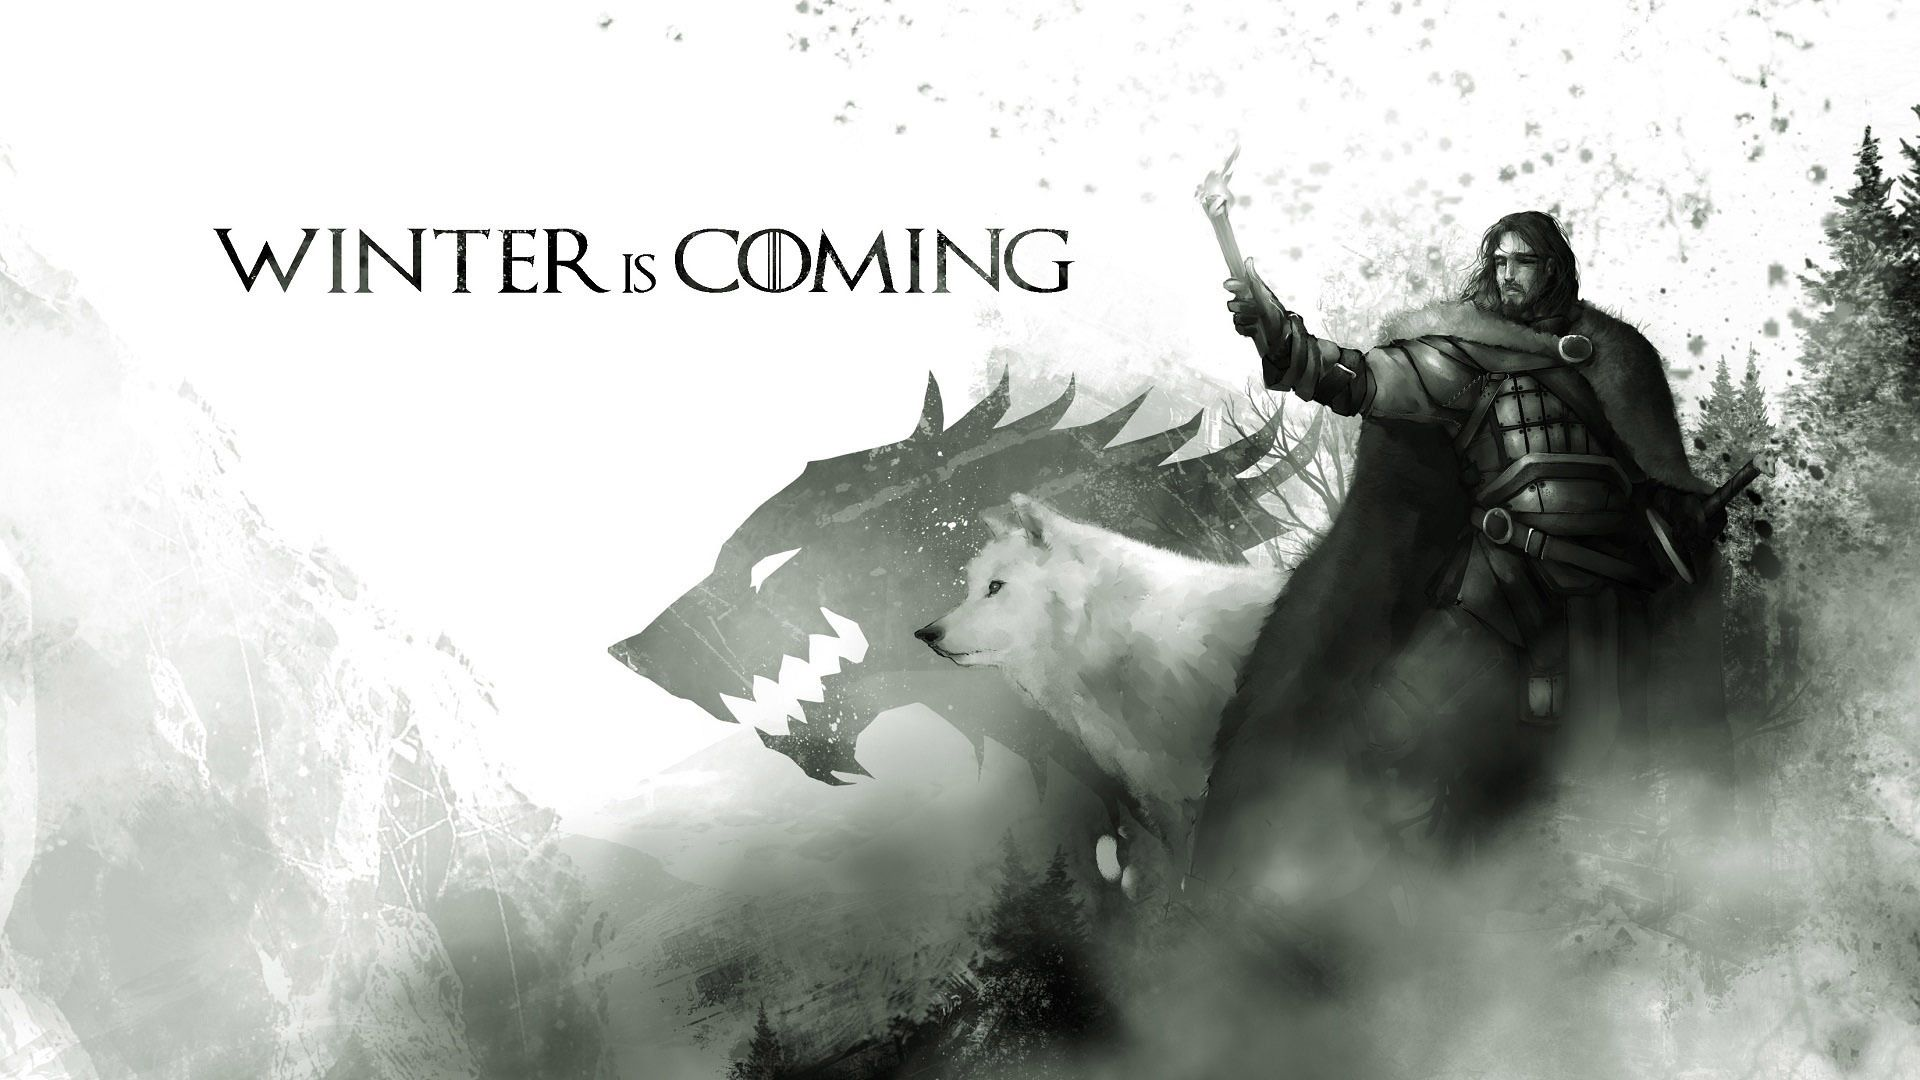 Game Of Thrones Wallpaper Winter Is Coming Wallpaper Game Of Thrones Winter Game Of Thrones Fans